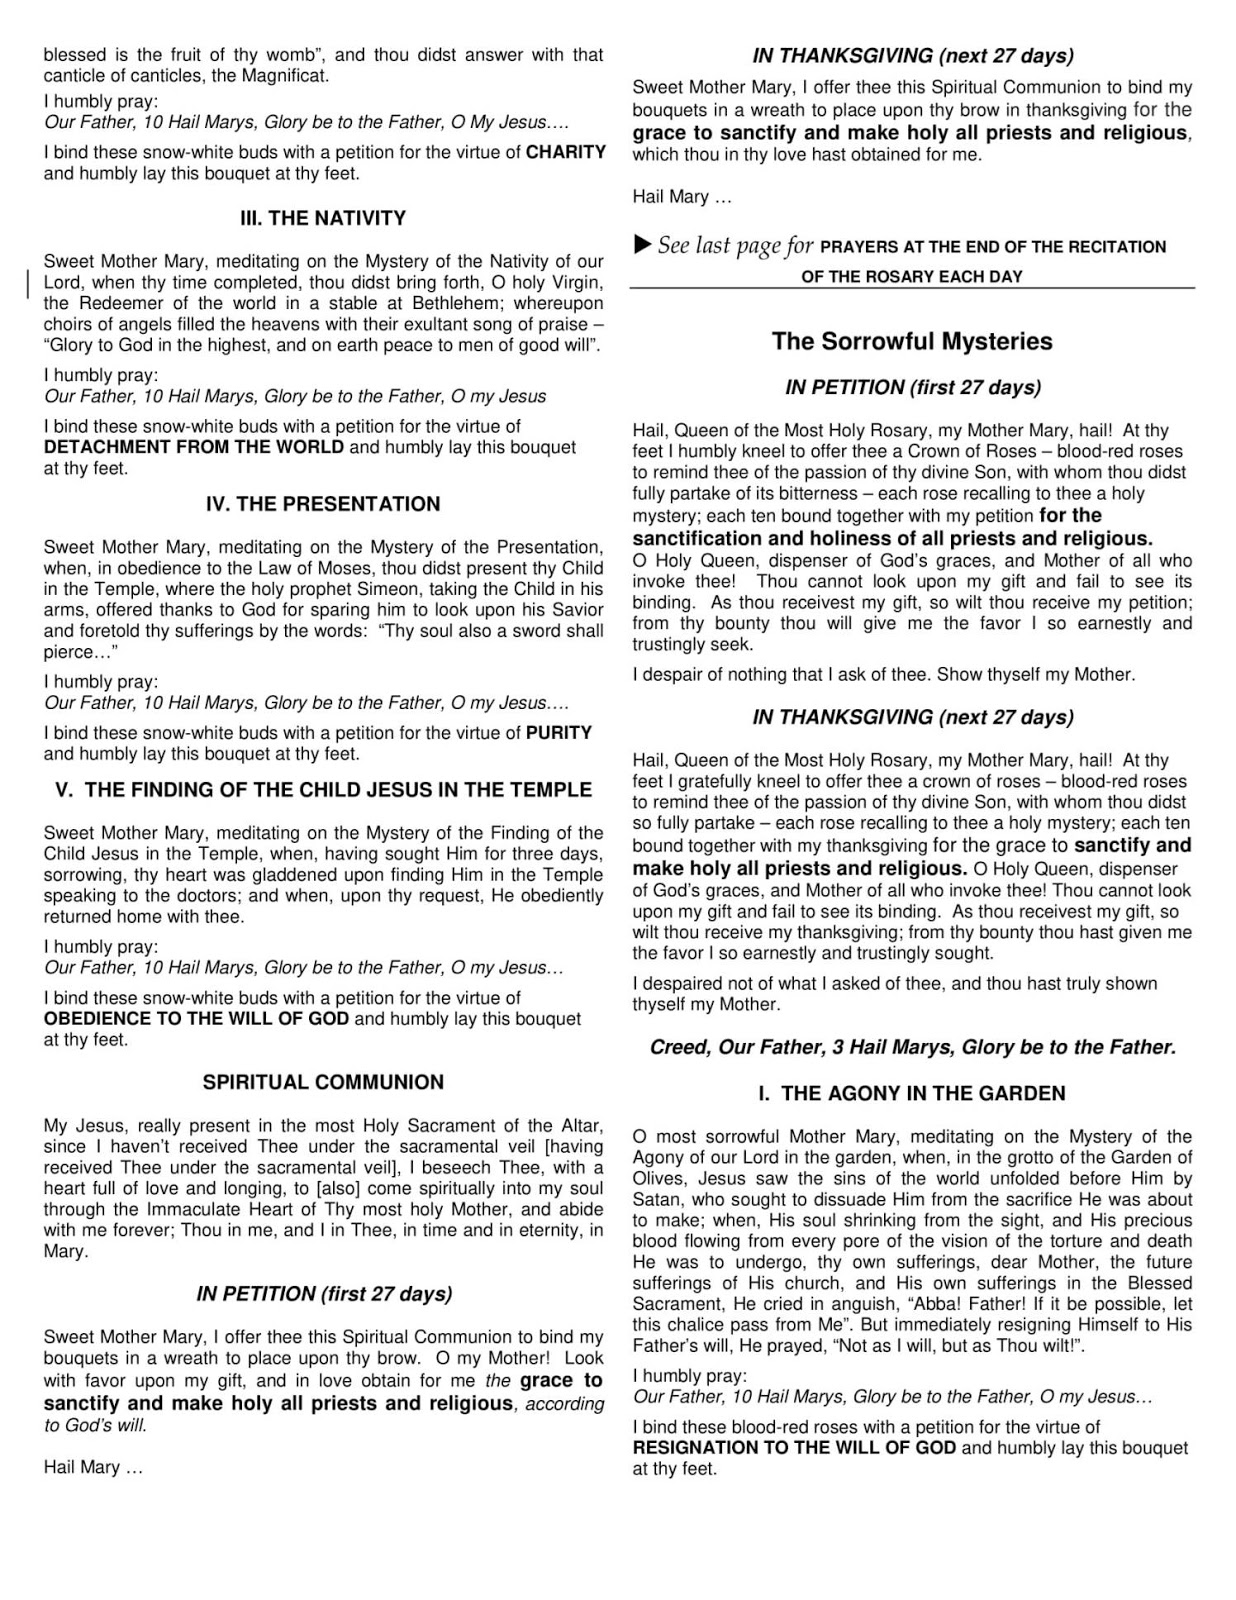 photo regarding 54 Day Rosary Novena Printable known as Refreshing Liturgical Circulation: 54-Working day Rosary Novena for the Clergy